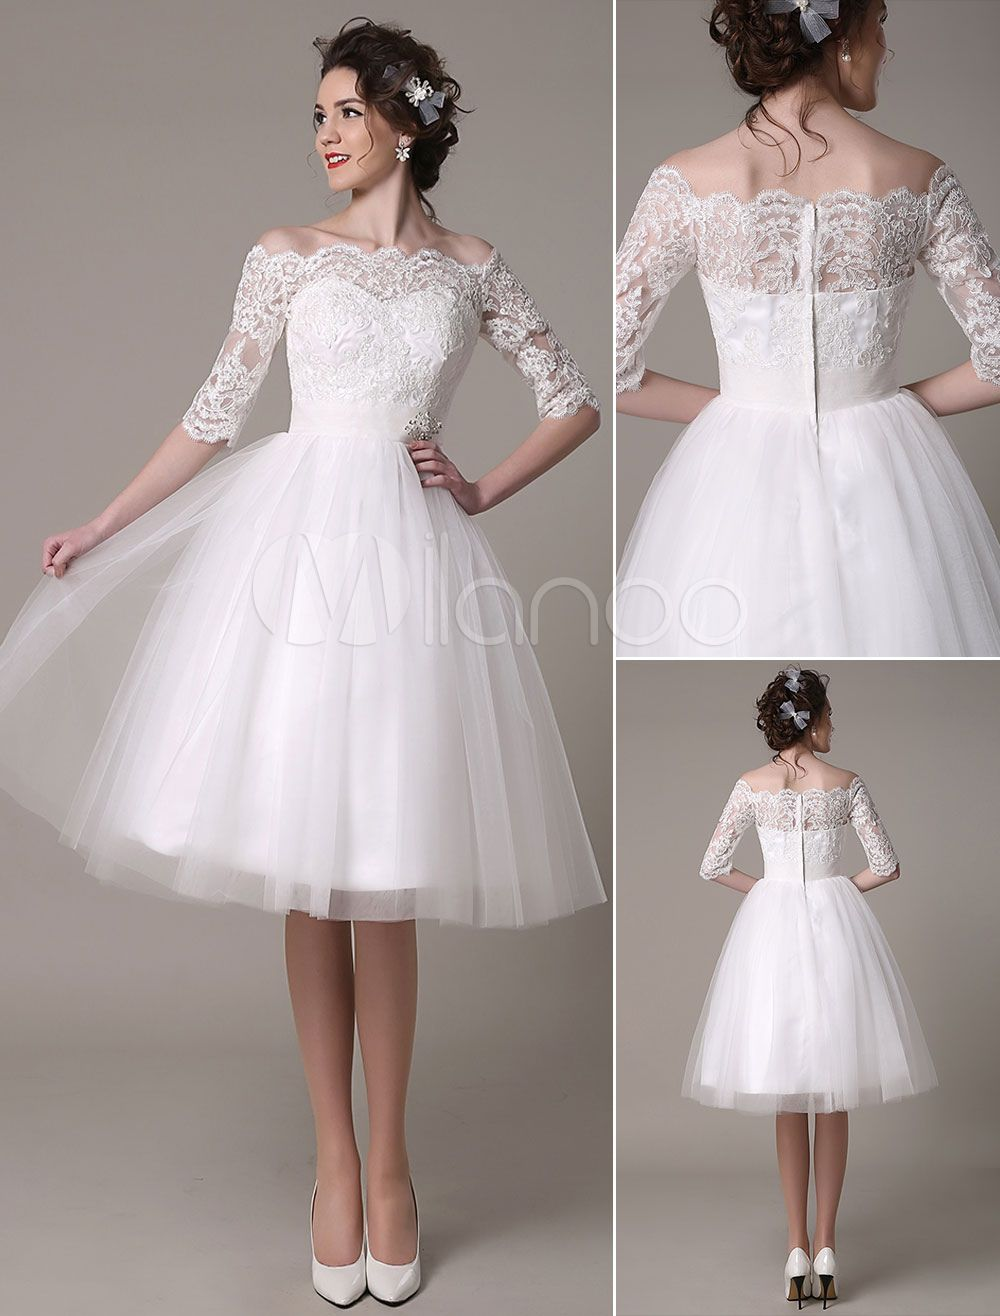 Lace Wedding Dress A-Line Knee Length Waist Rhinestone Bridal Dress Milanoo